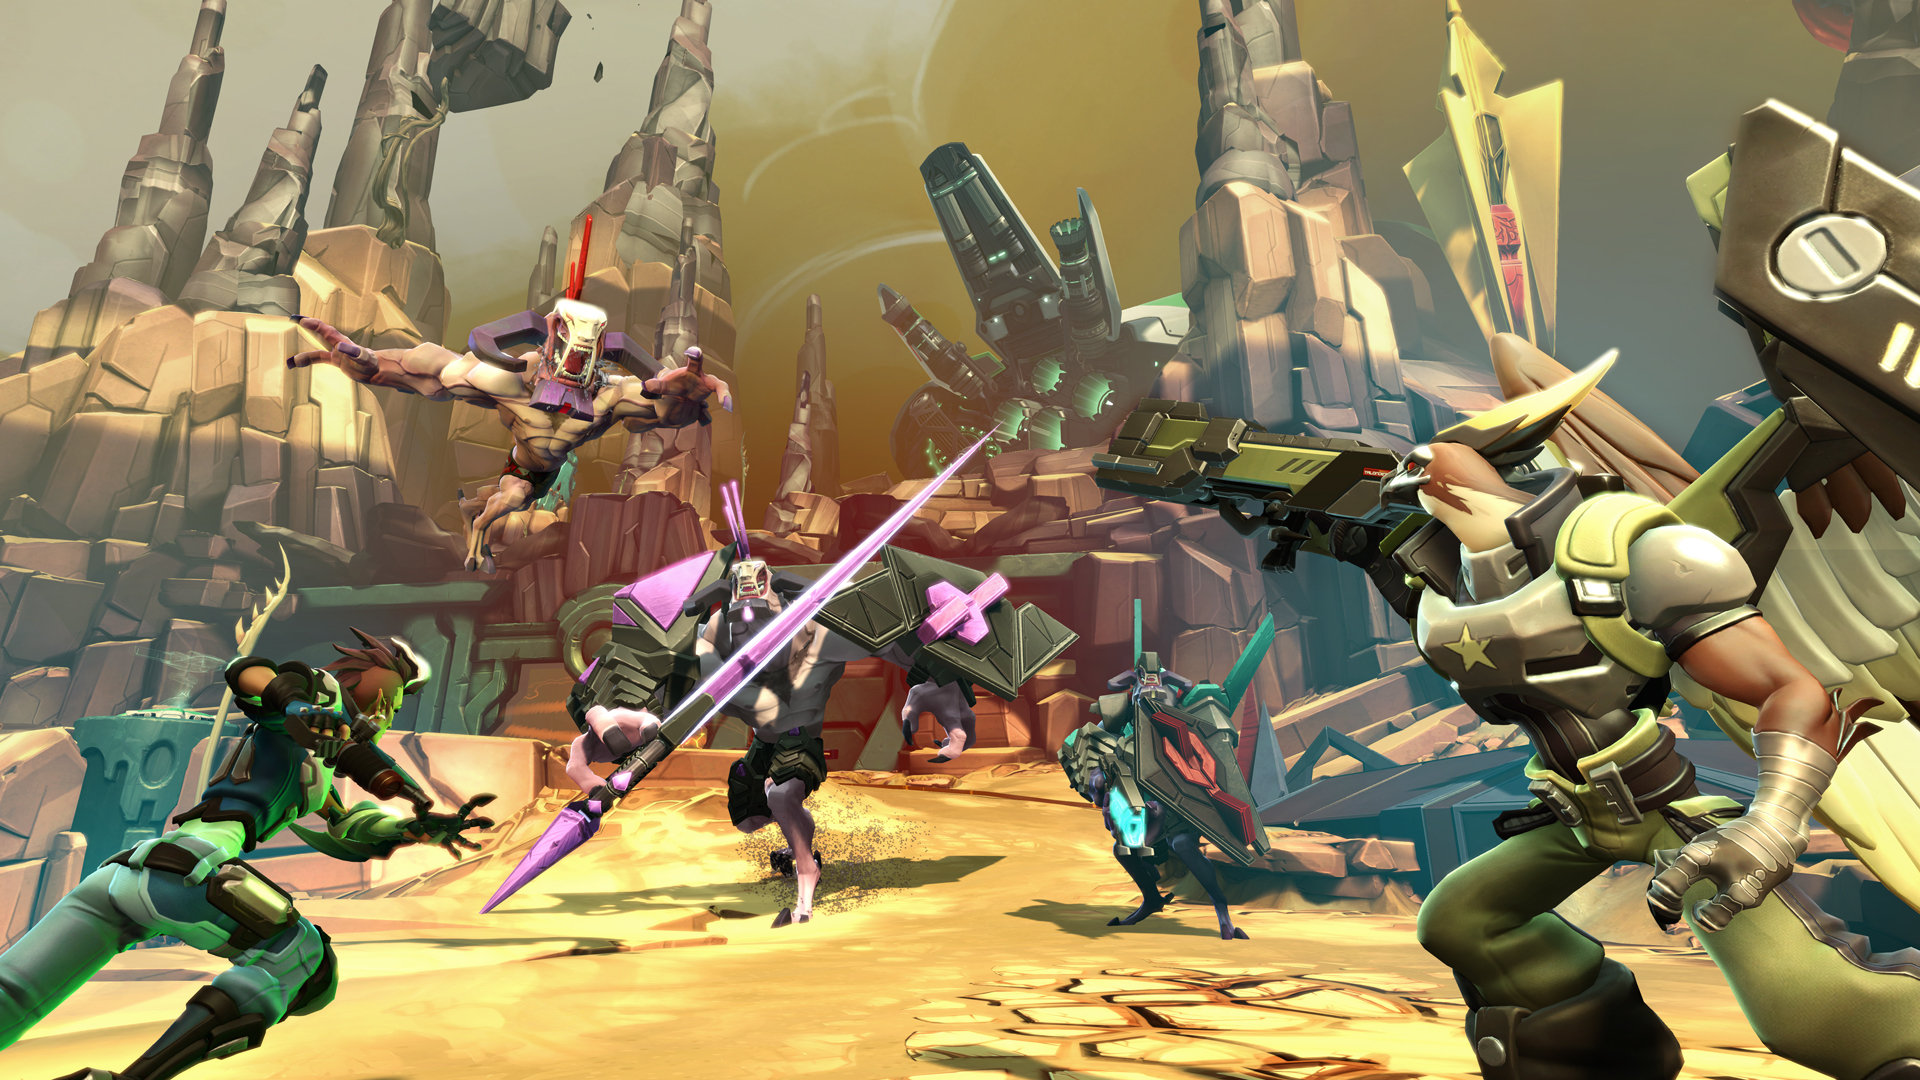 battleborn-screen-04-ps4-us-30nov15